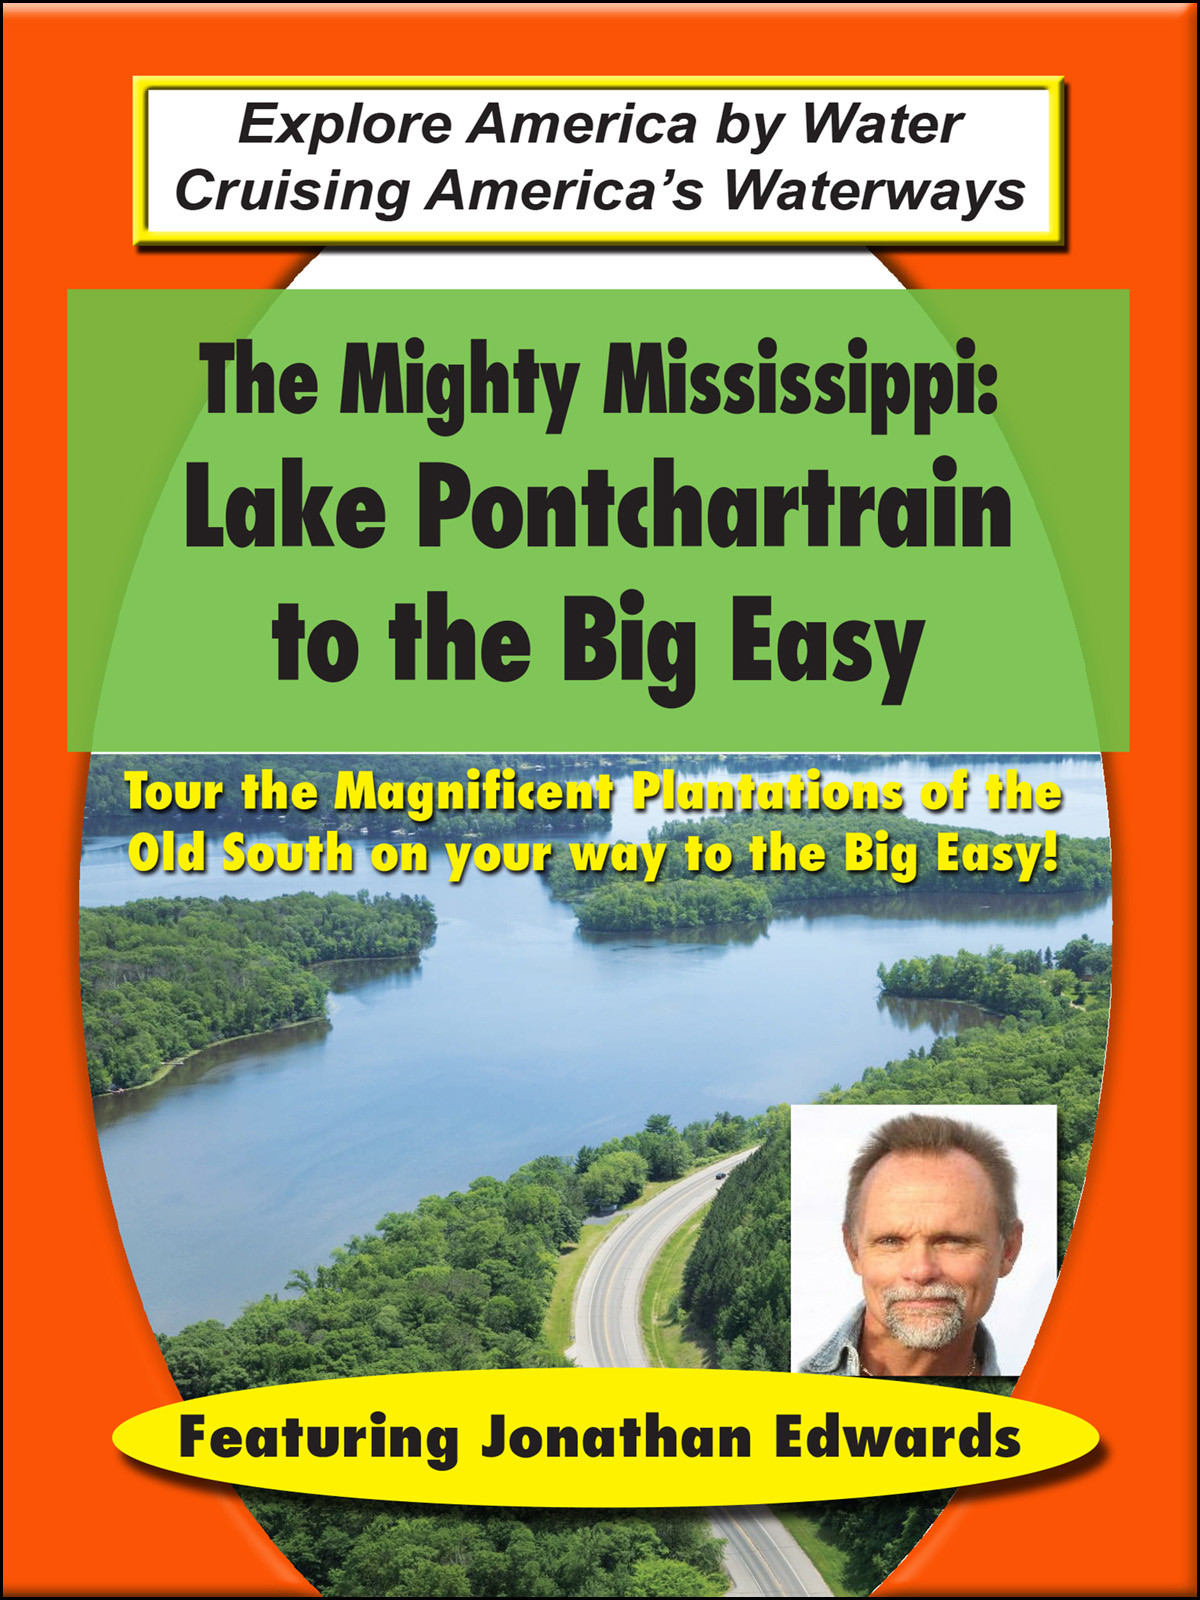 T8899 - The Mighty Mississippi LakePontchartrainto the Big Easy